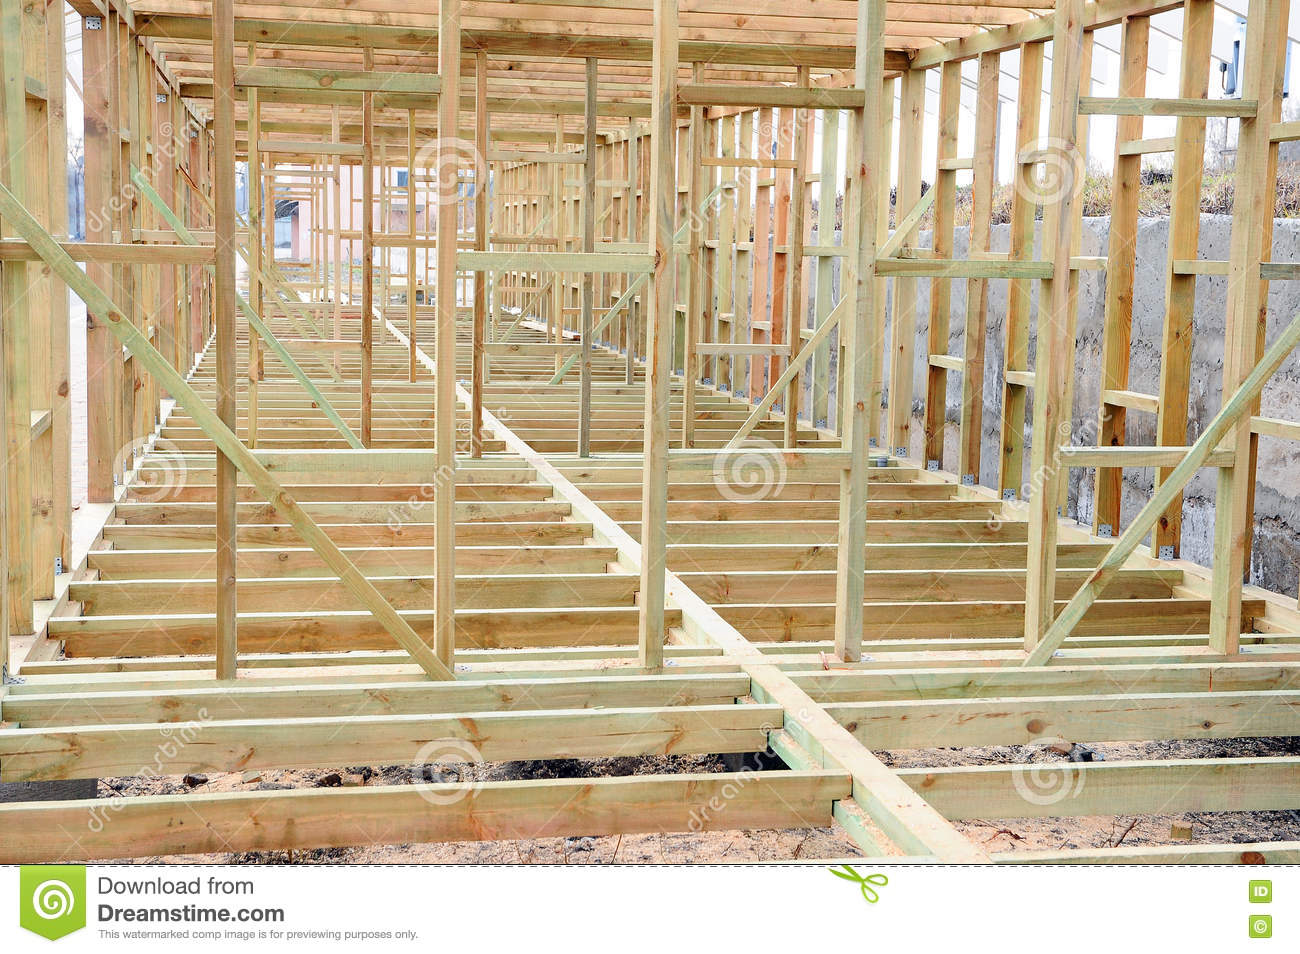 the wooden structure of the building wooden frame building - Wood Frame Building